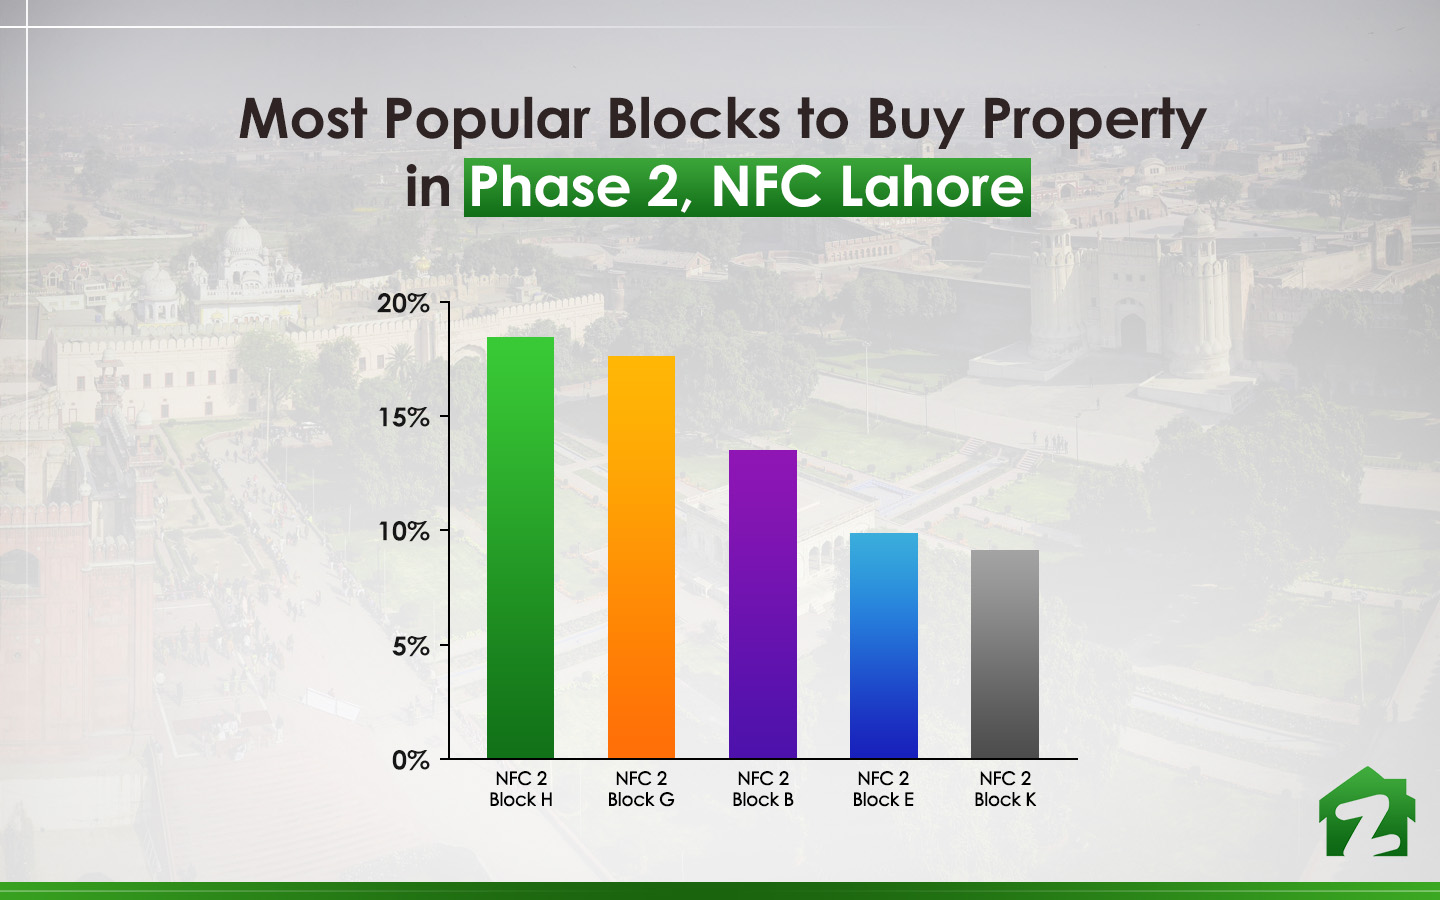 Most searched block to buy property in Phase 2, NFC Lahore